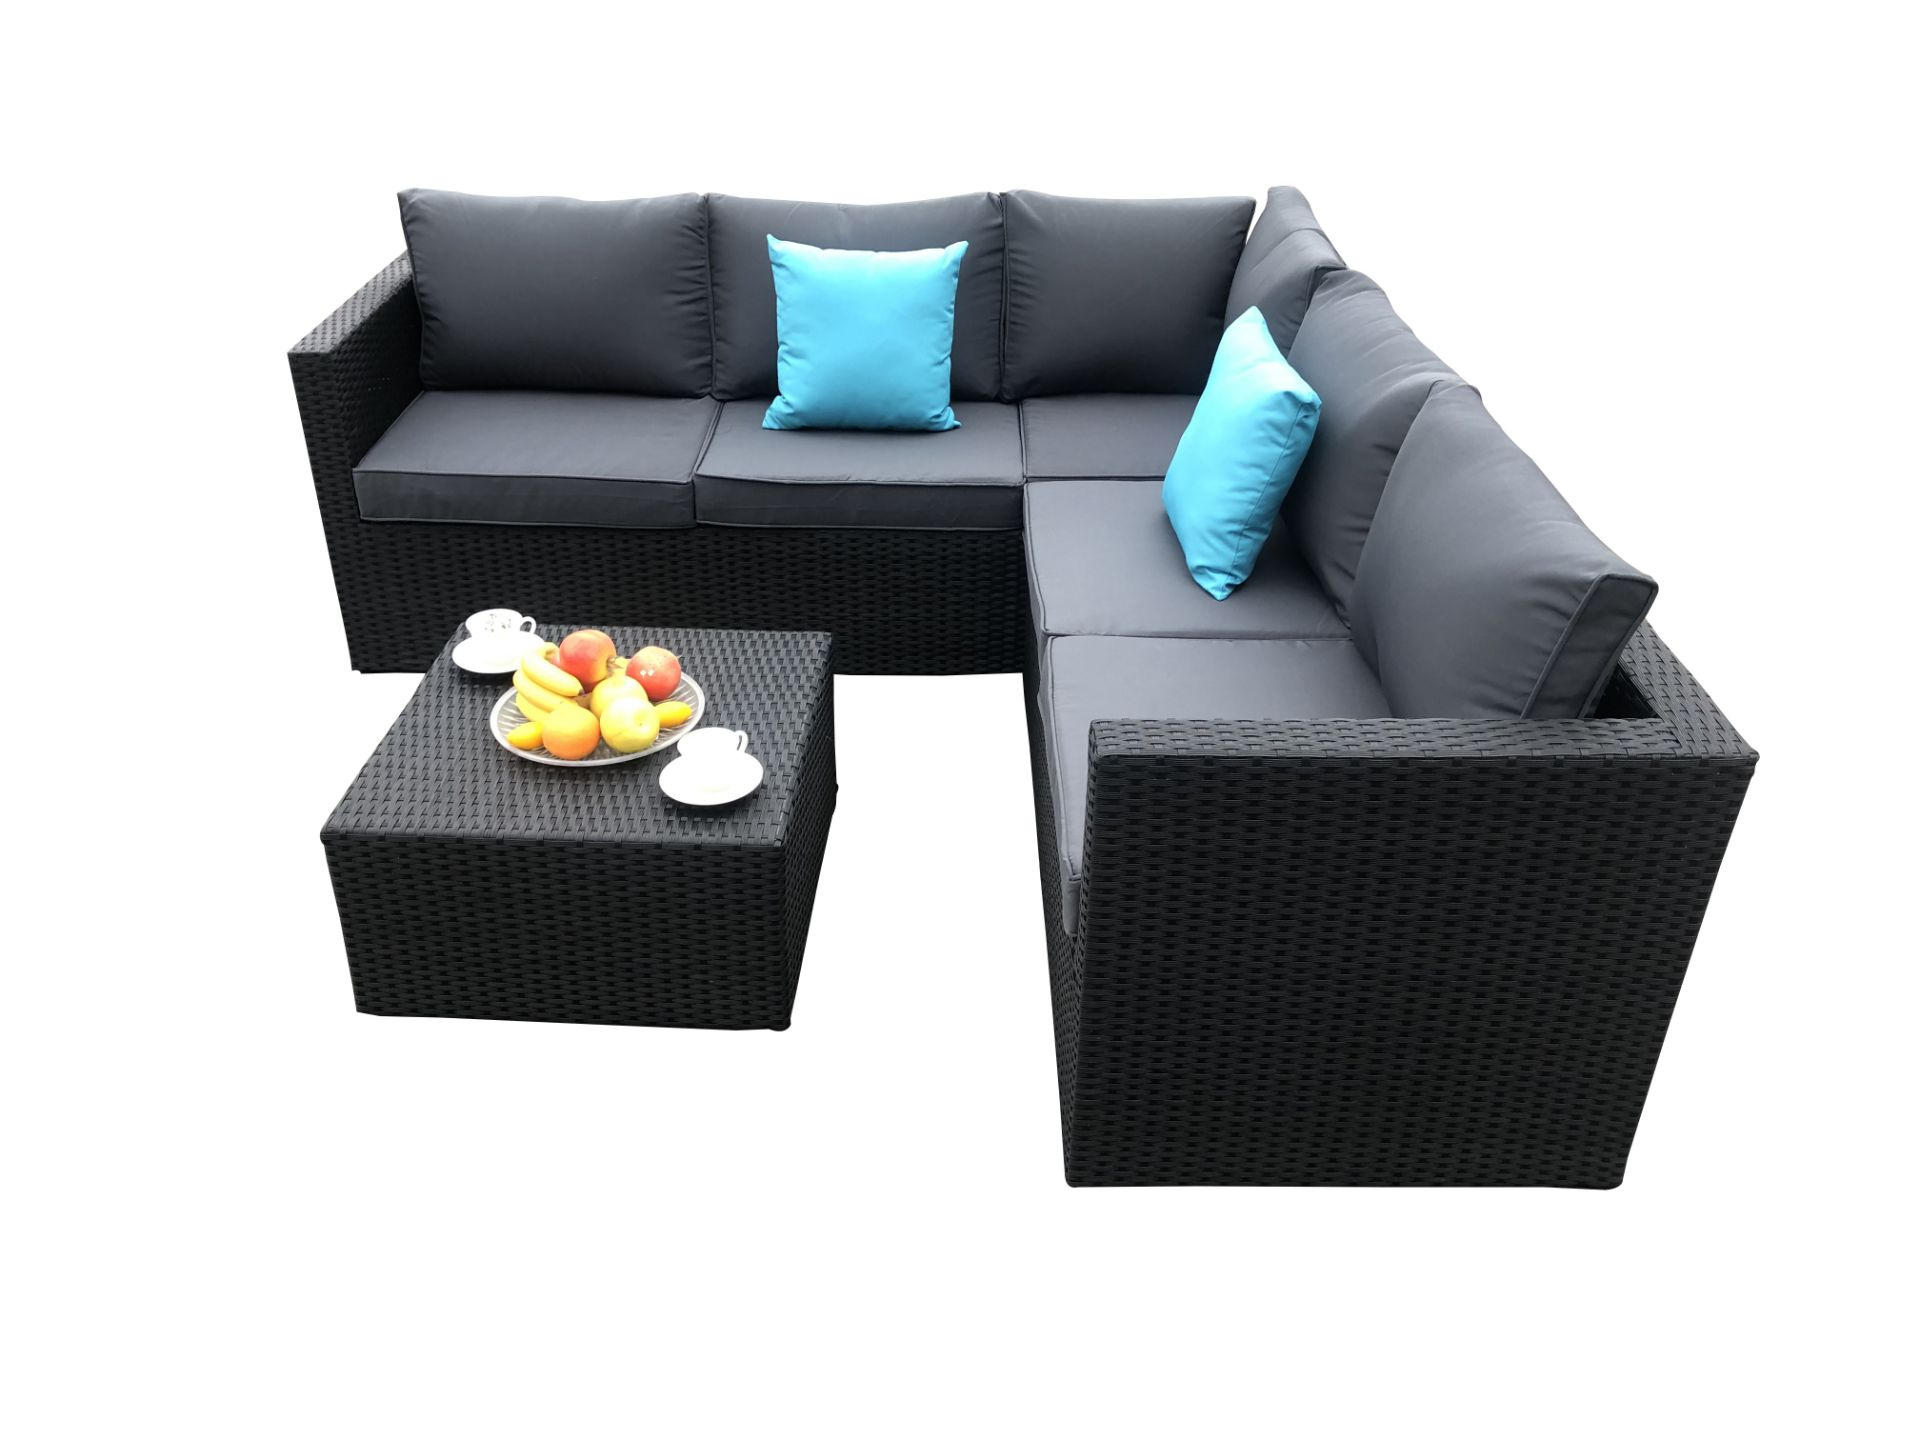 + VAT Brand New Chelsea Garden Company Six Seater Rattan Corner Sofa Set With Table - Steel Frame -